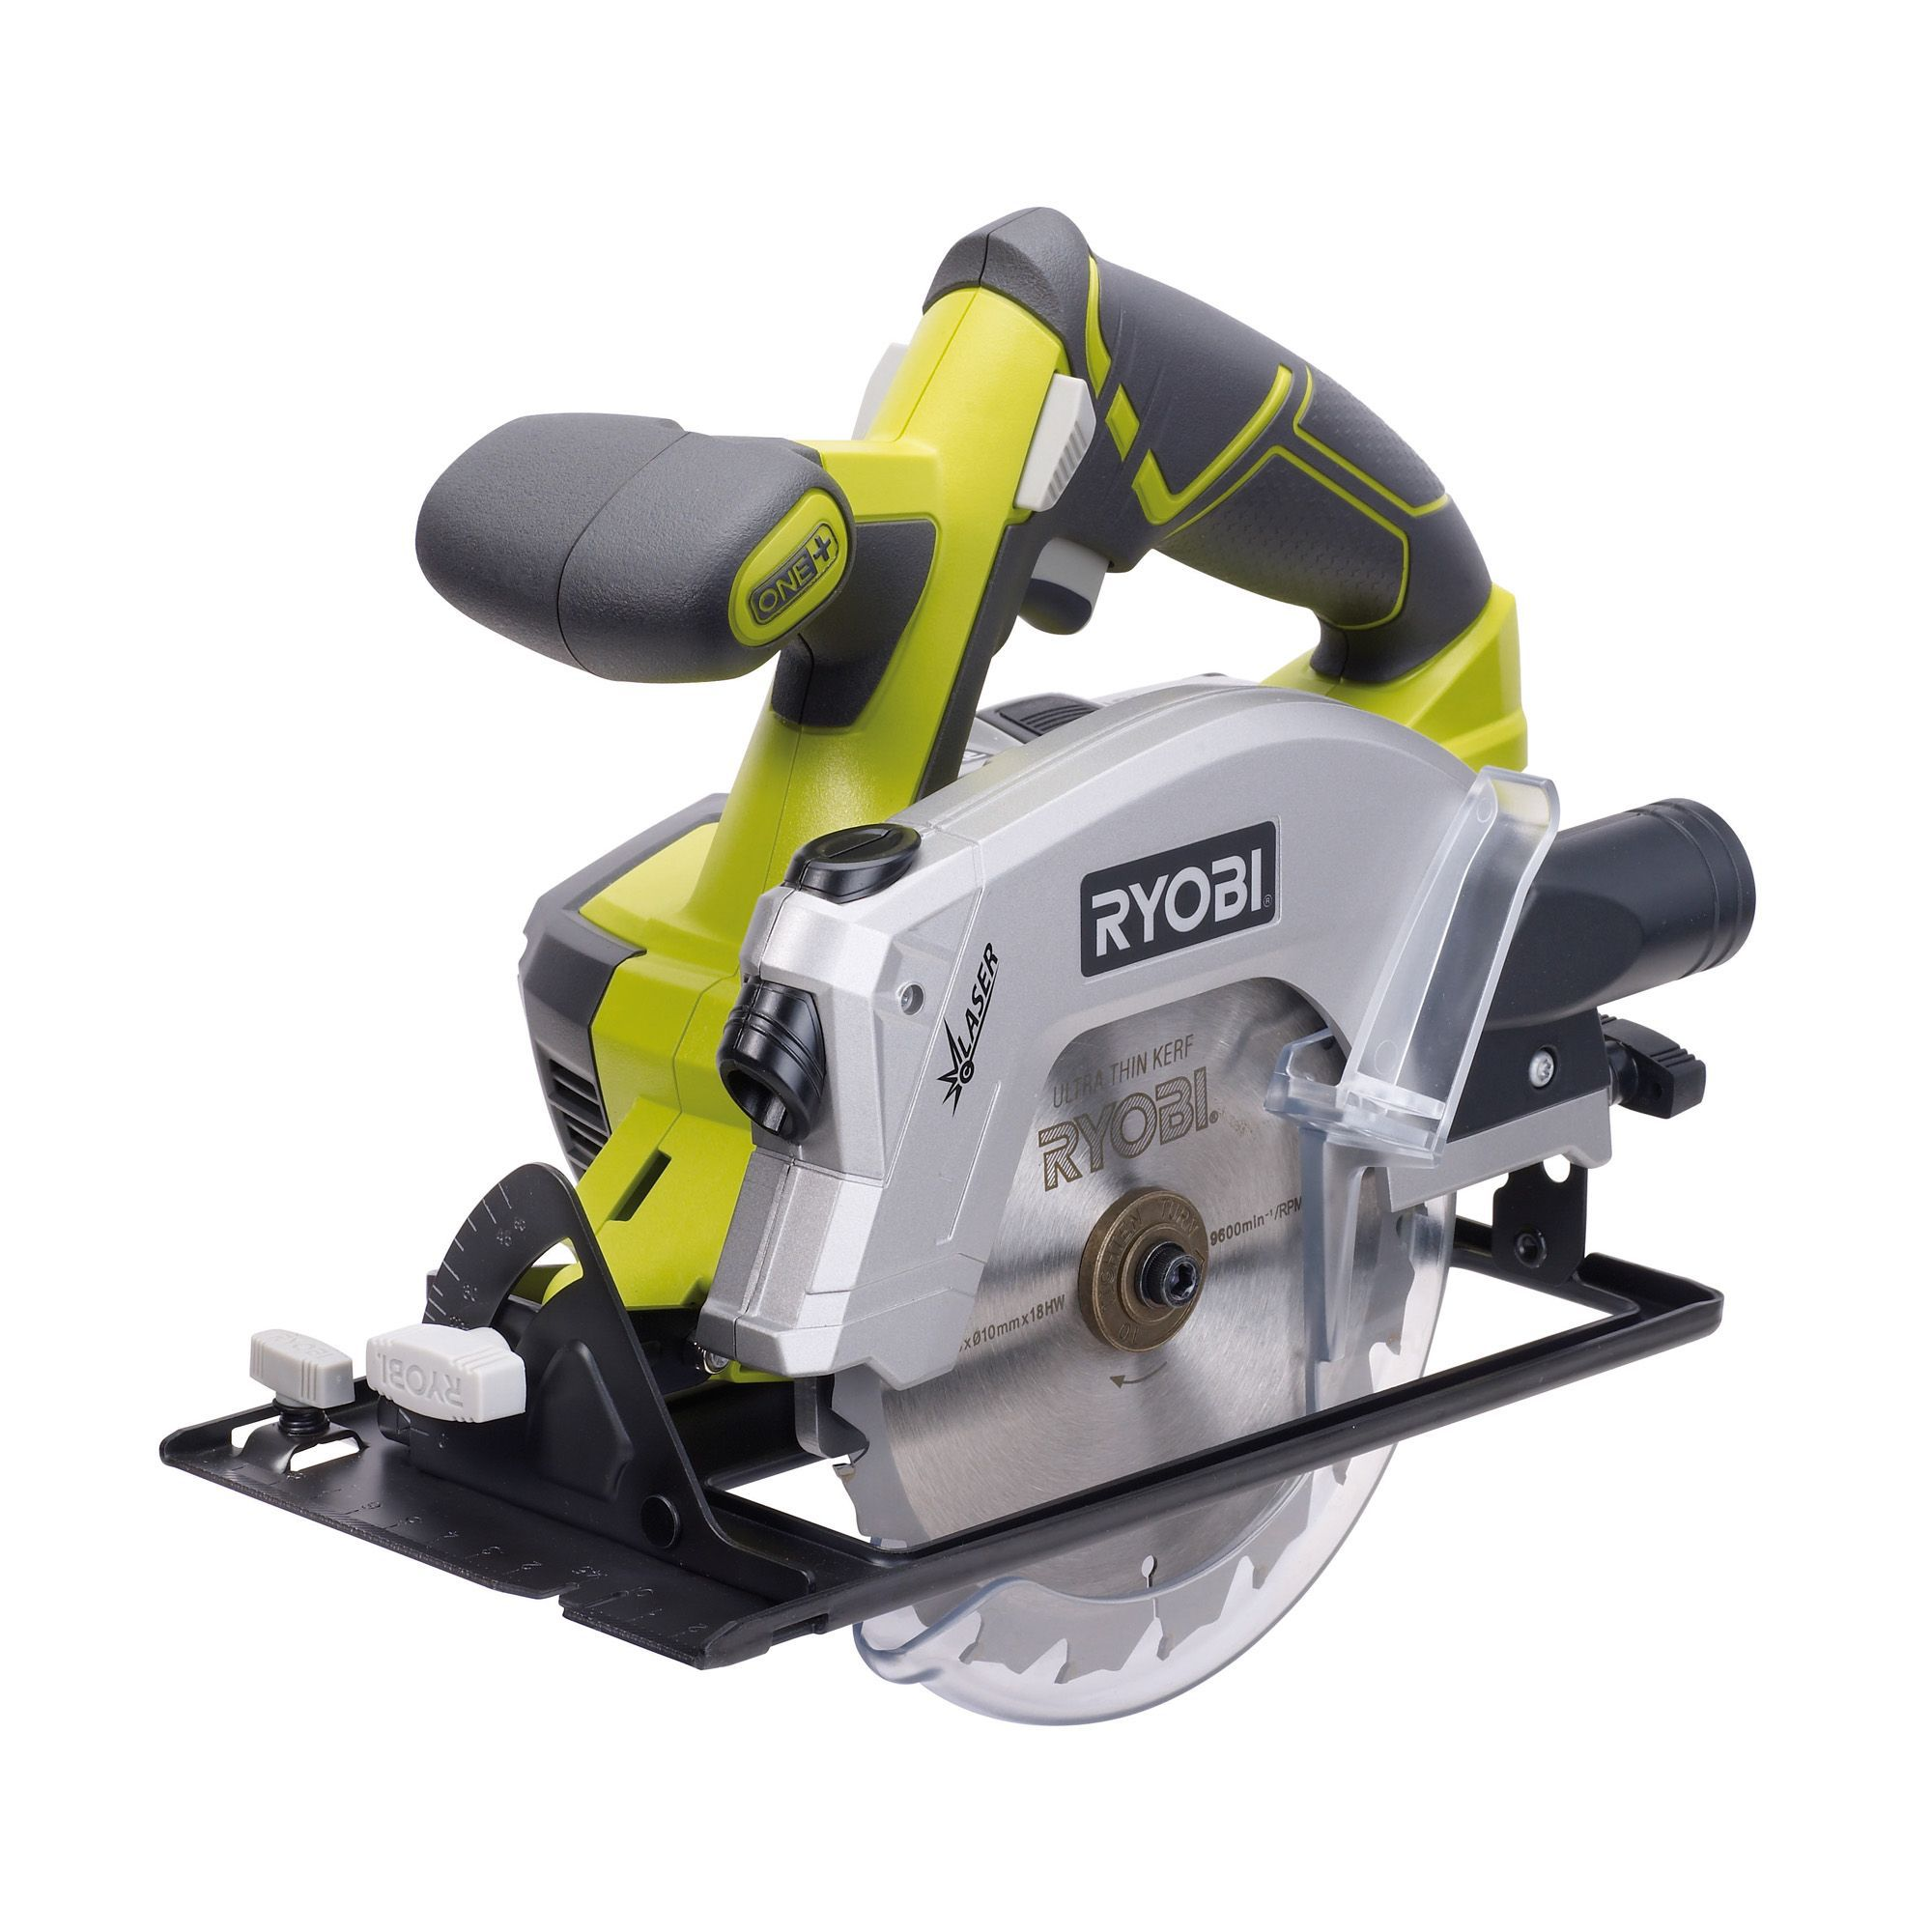 Ryobi one 18v cordless 4 stage pendulum action jigsaw r18js 0 bare ryobi one 18v 150mm cordless circular saw rwsl18011l greentooth Image collections